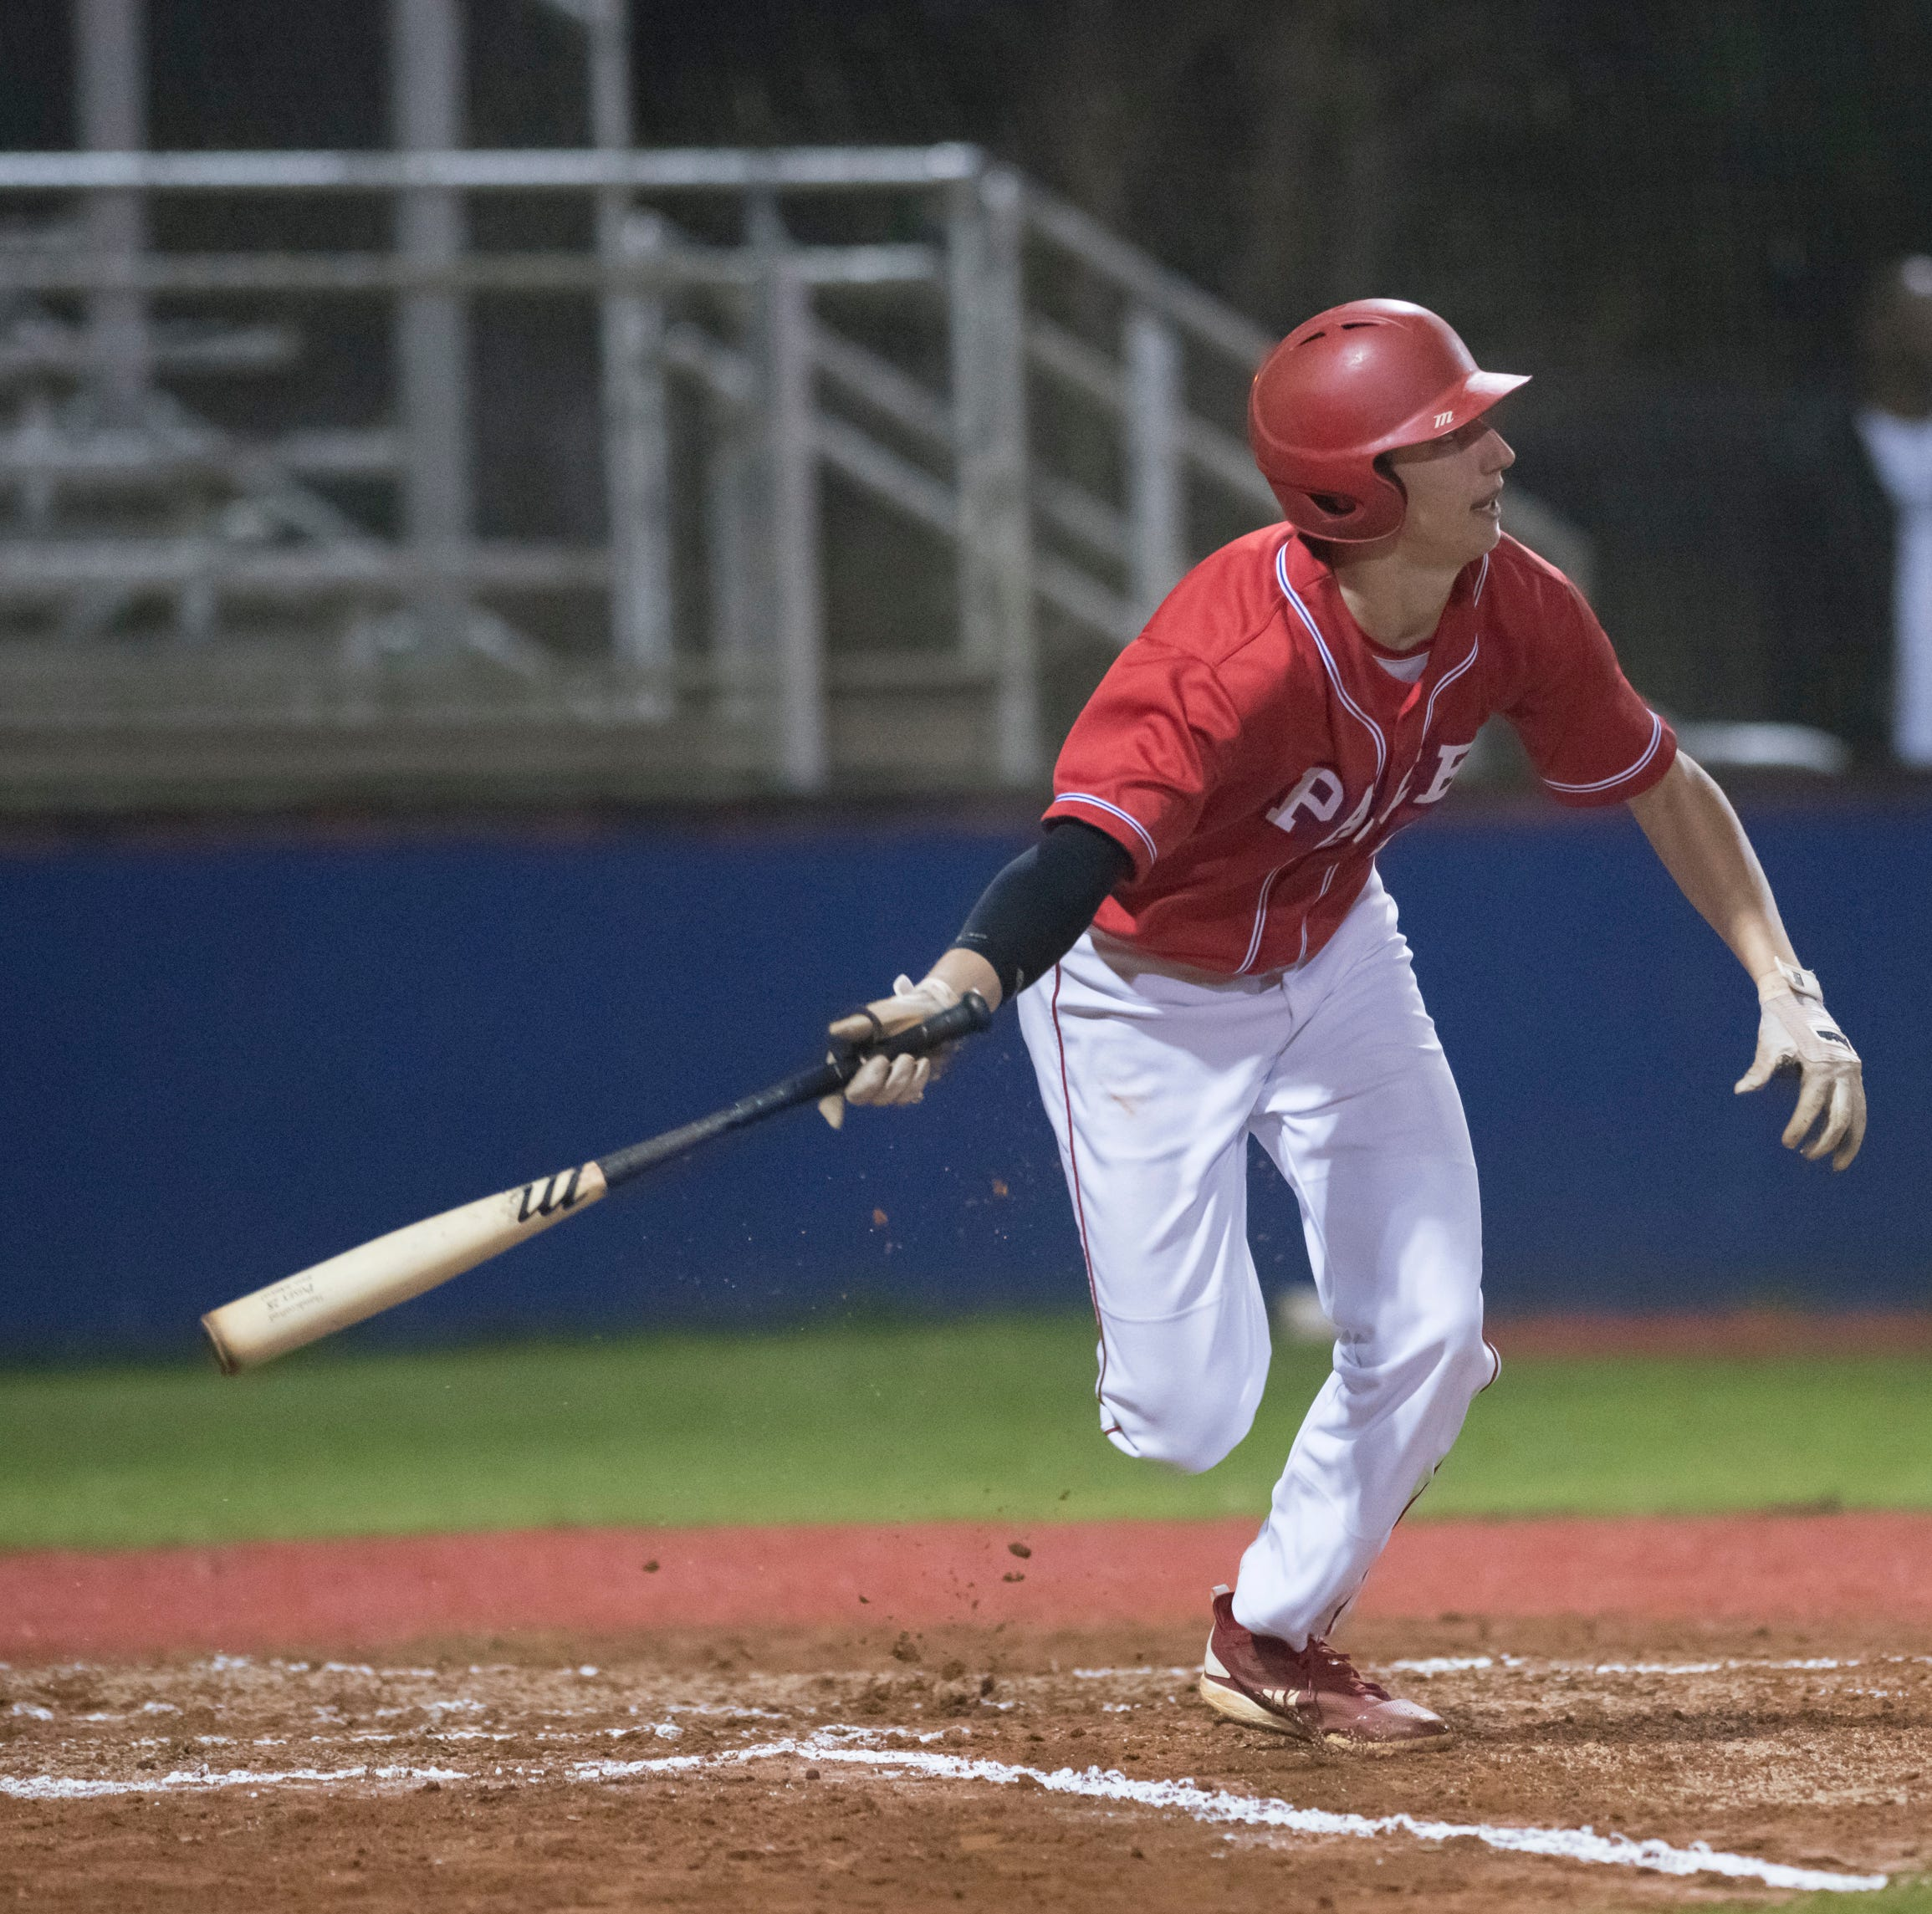 VOTE: PNJ Baseball Player of the Week Poll (March 4), Nominees: Sproat, Holland, McCants